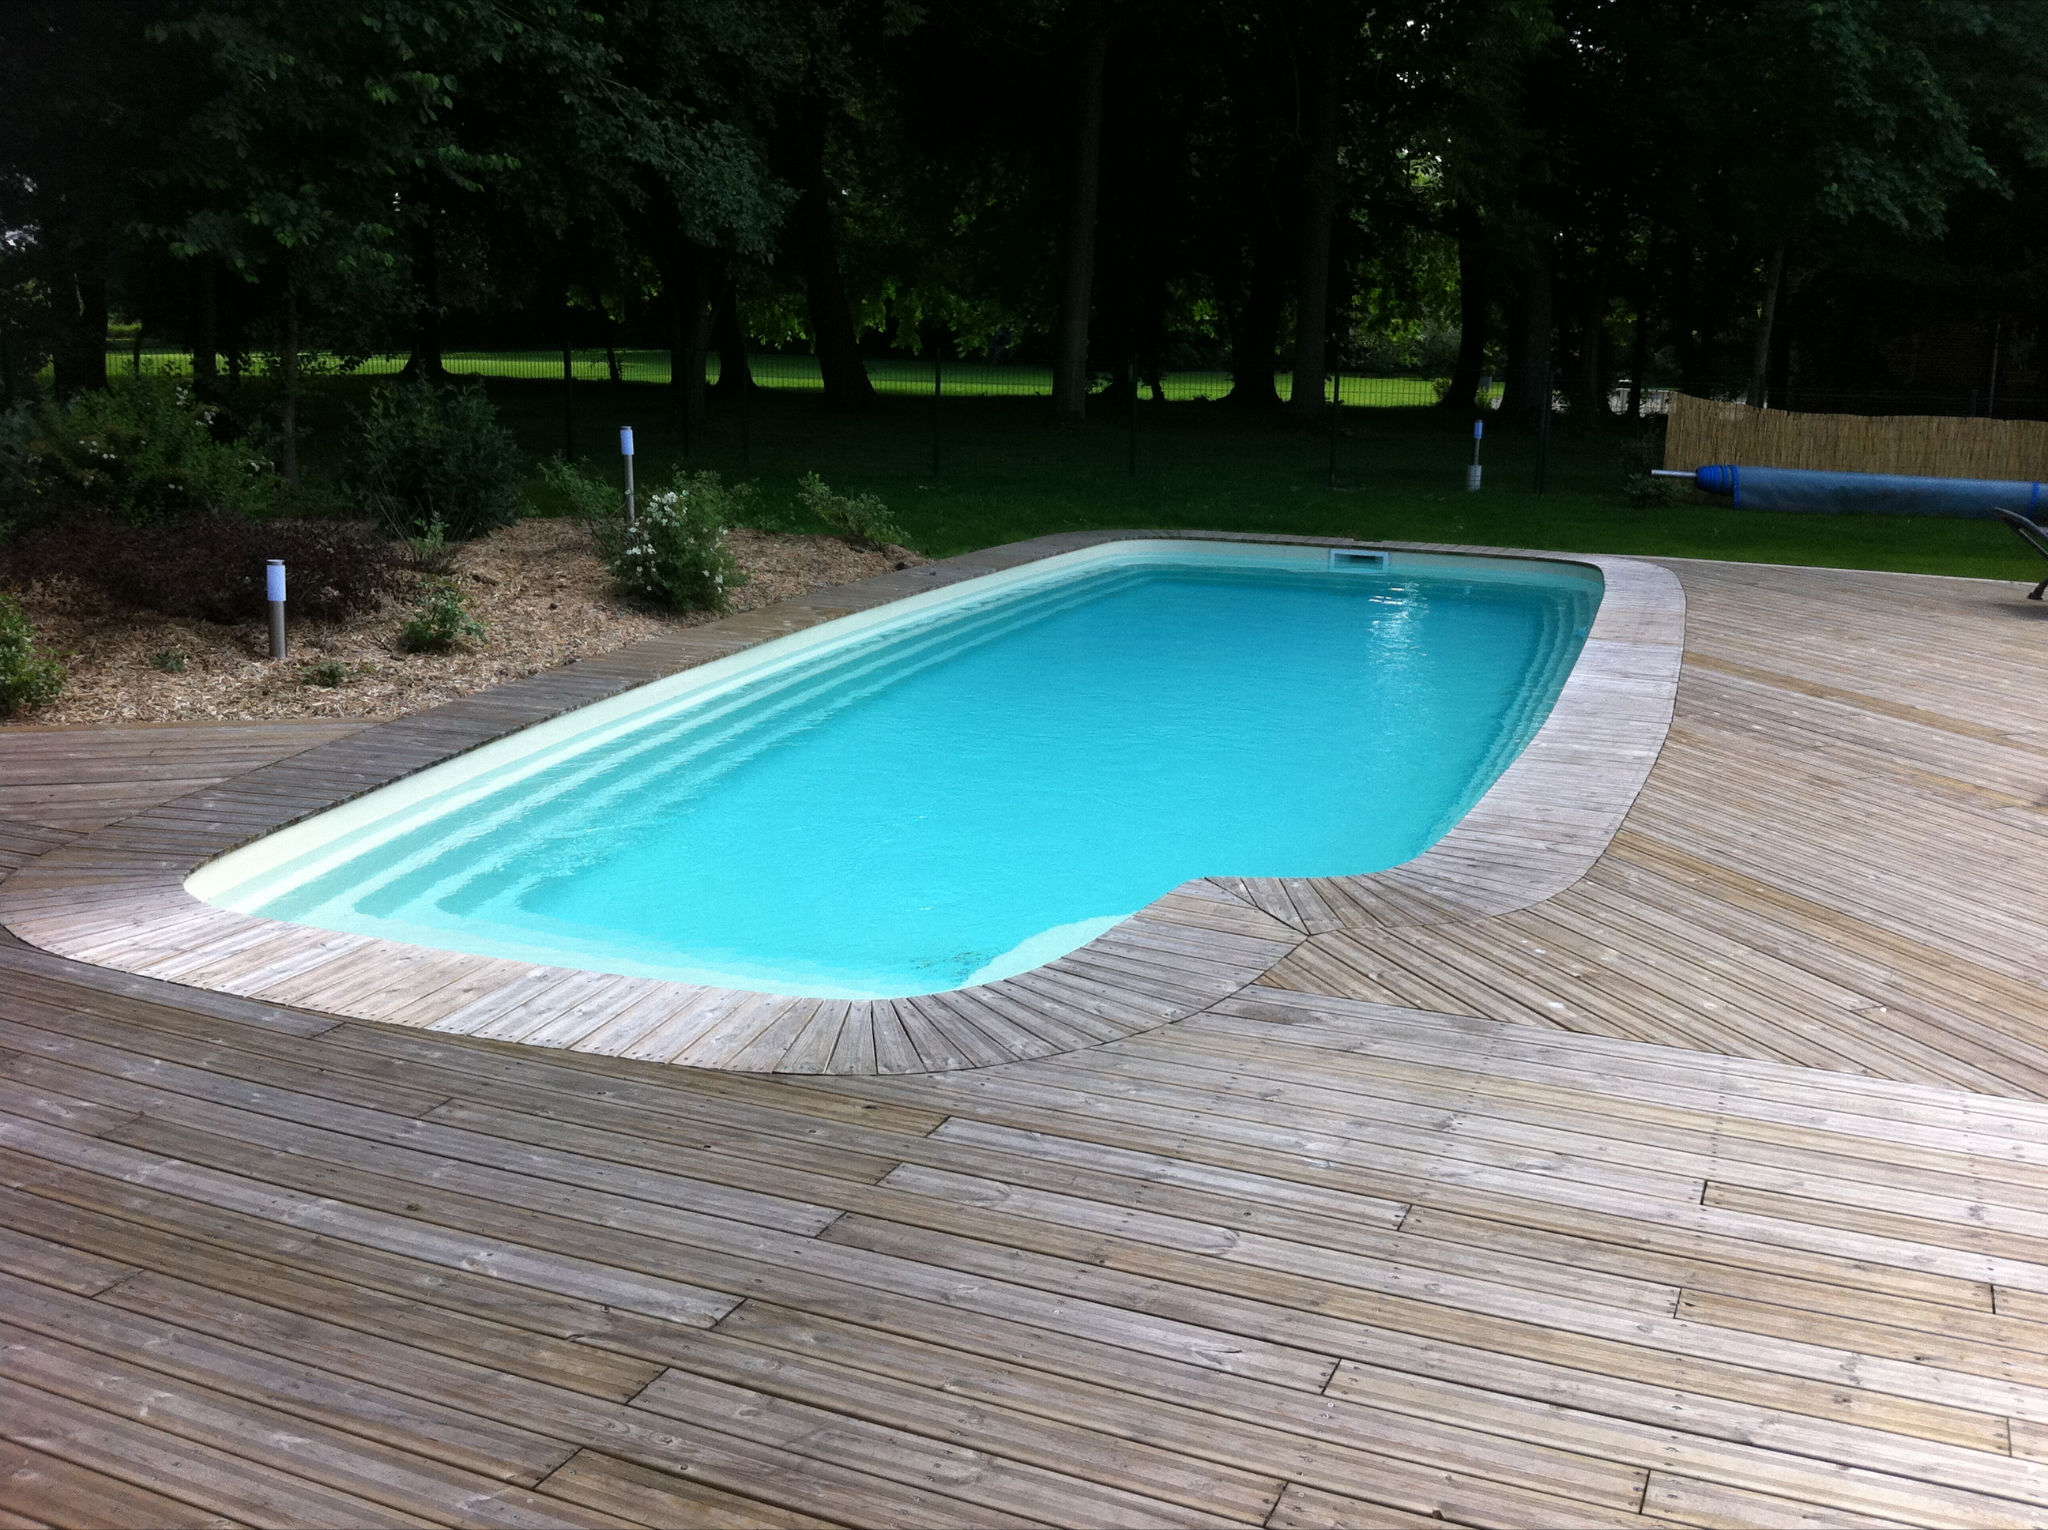 Piscine coque indiana 3 picardie piscine for Installation piscine coque